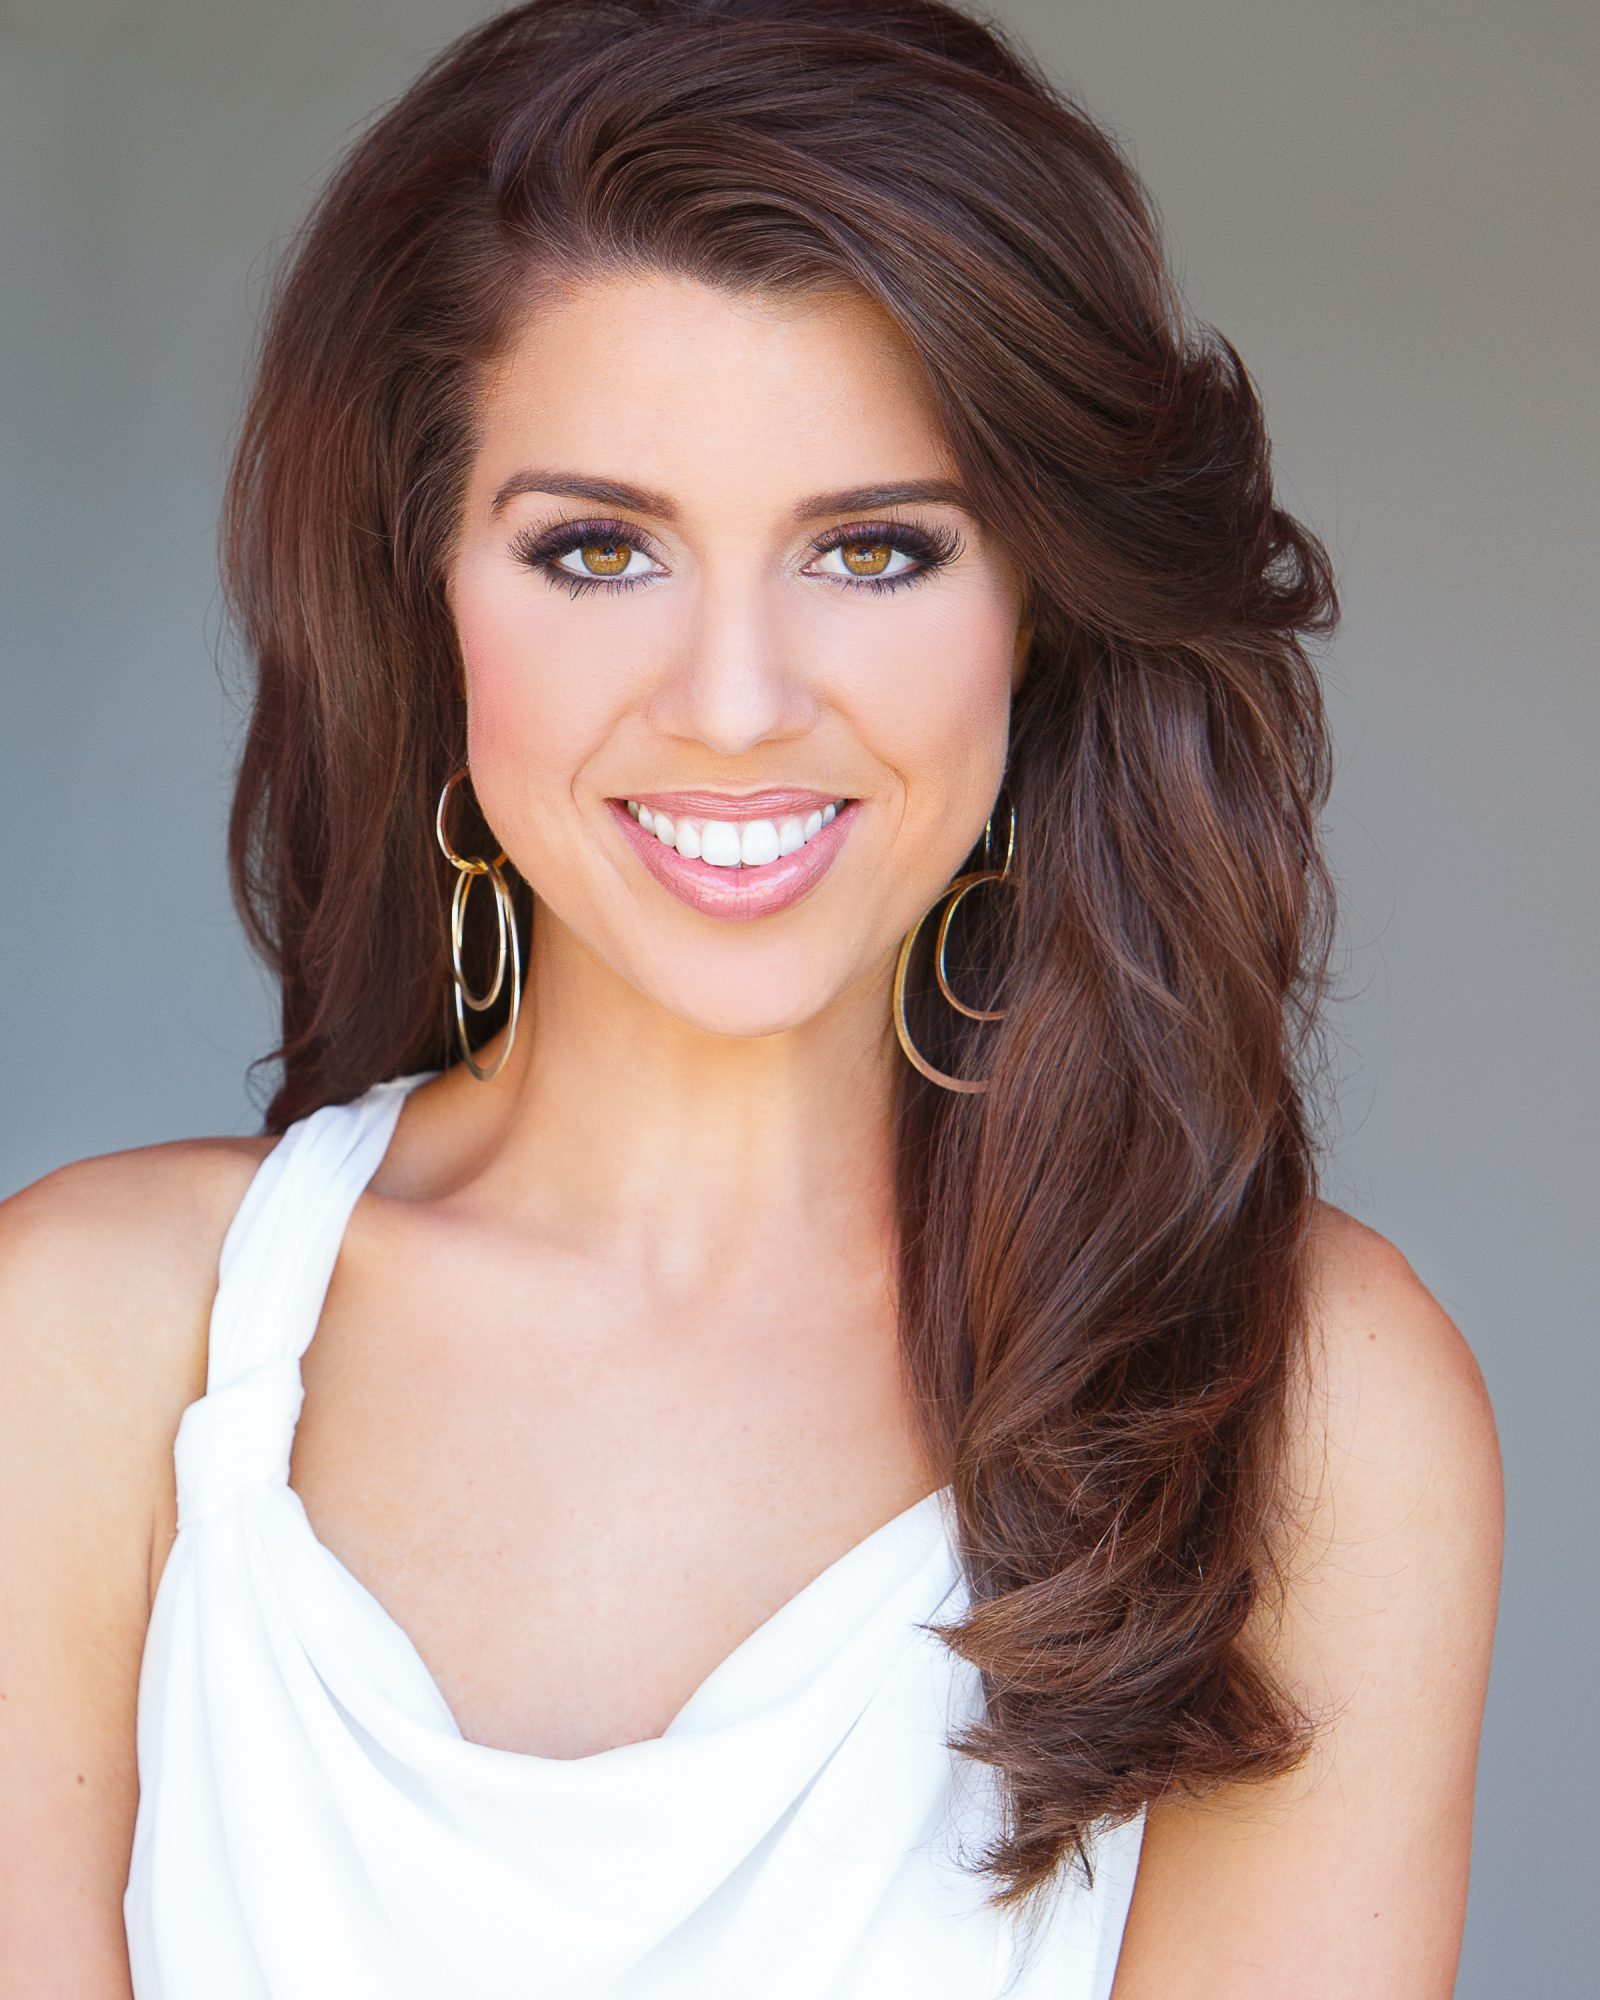 miss-south-carolina-lanie-hudson.jpg